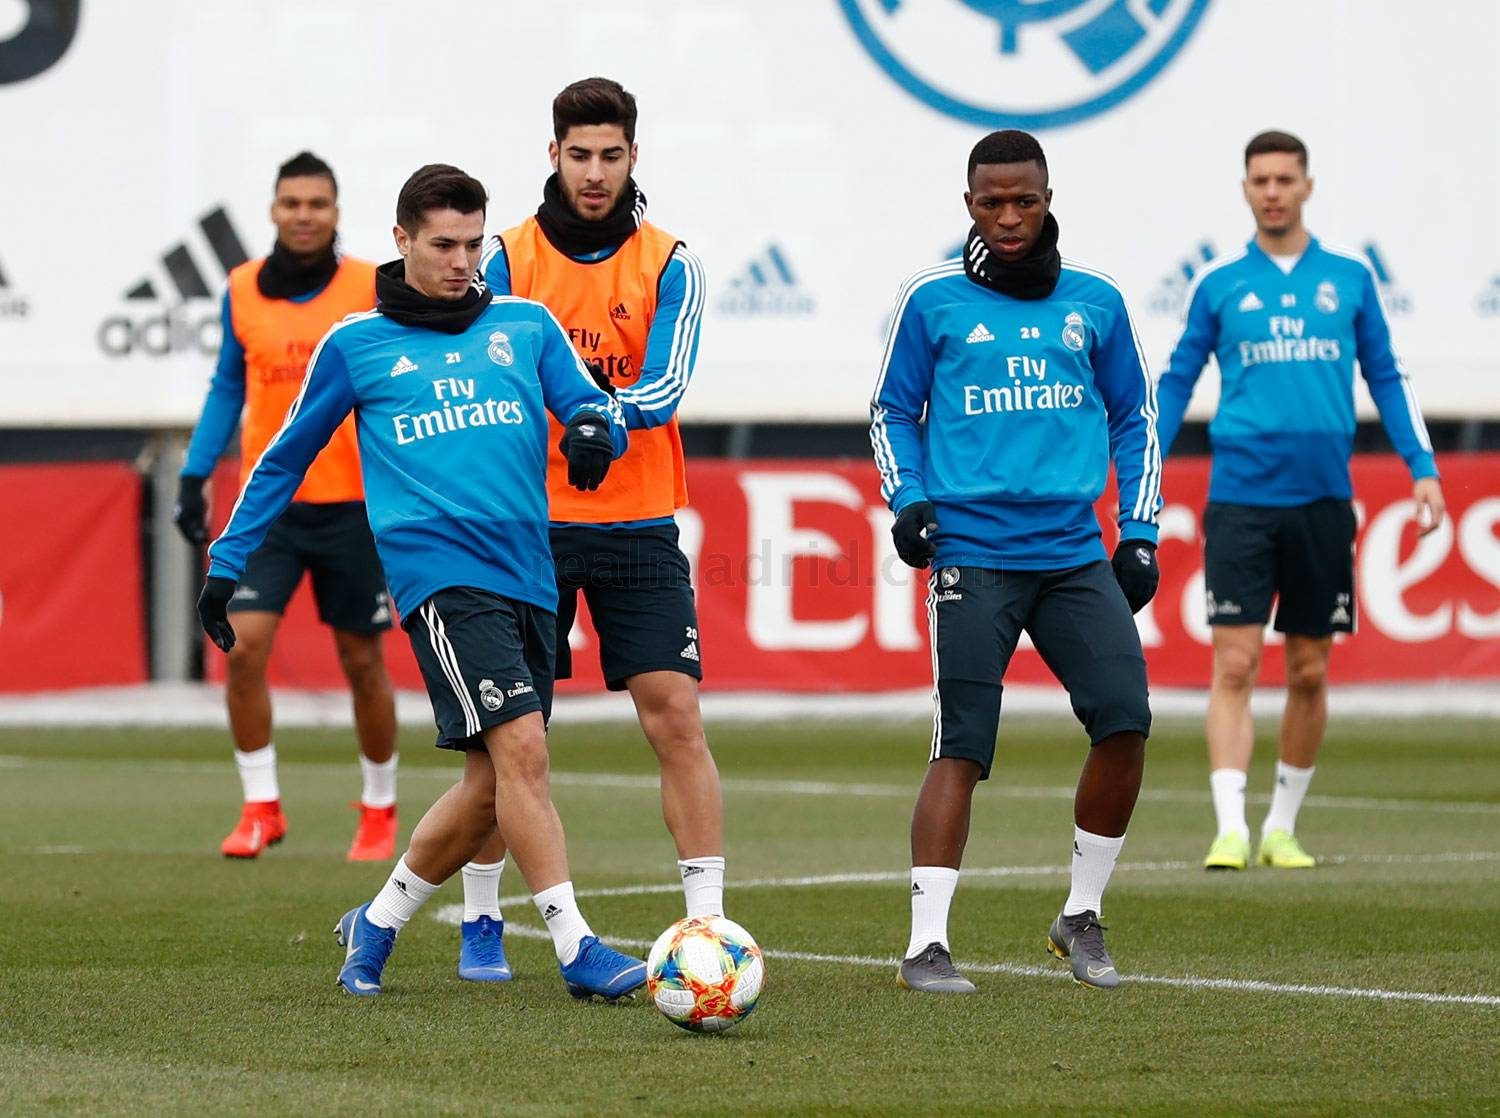 Real Madrid - Entrenamiento del Real Madrid - 29-01-2019